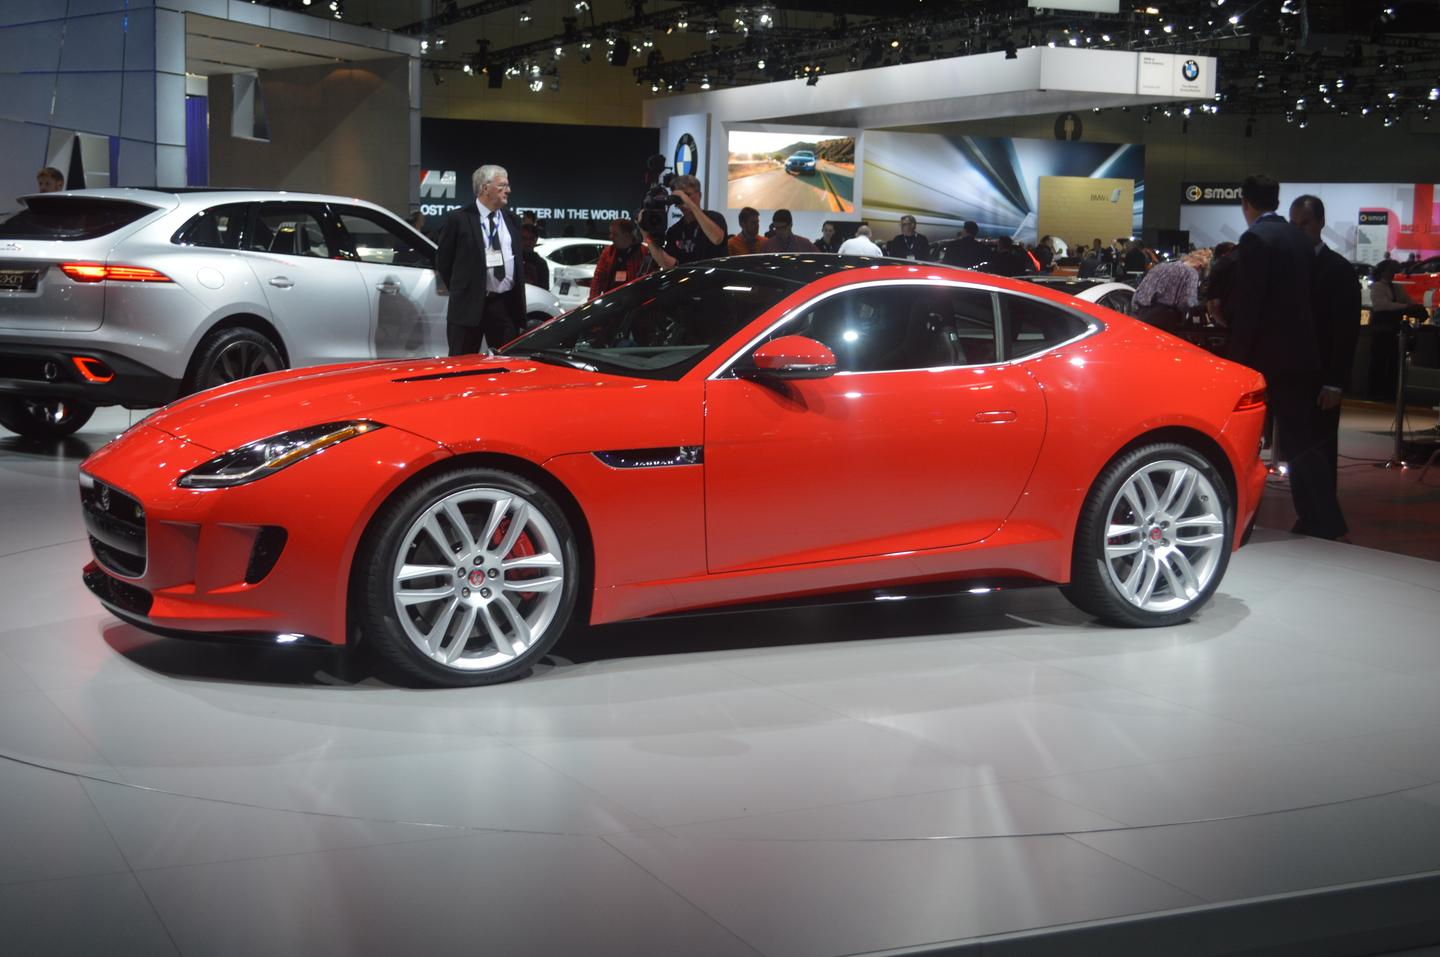 The F-Type Coupé is an advance on the convertible line